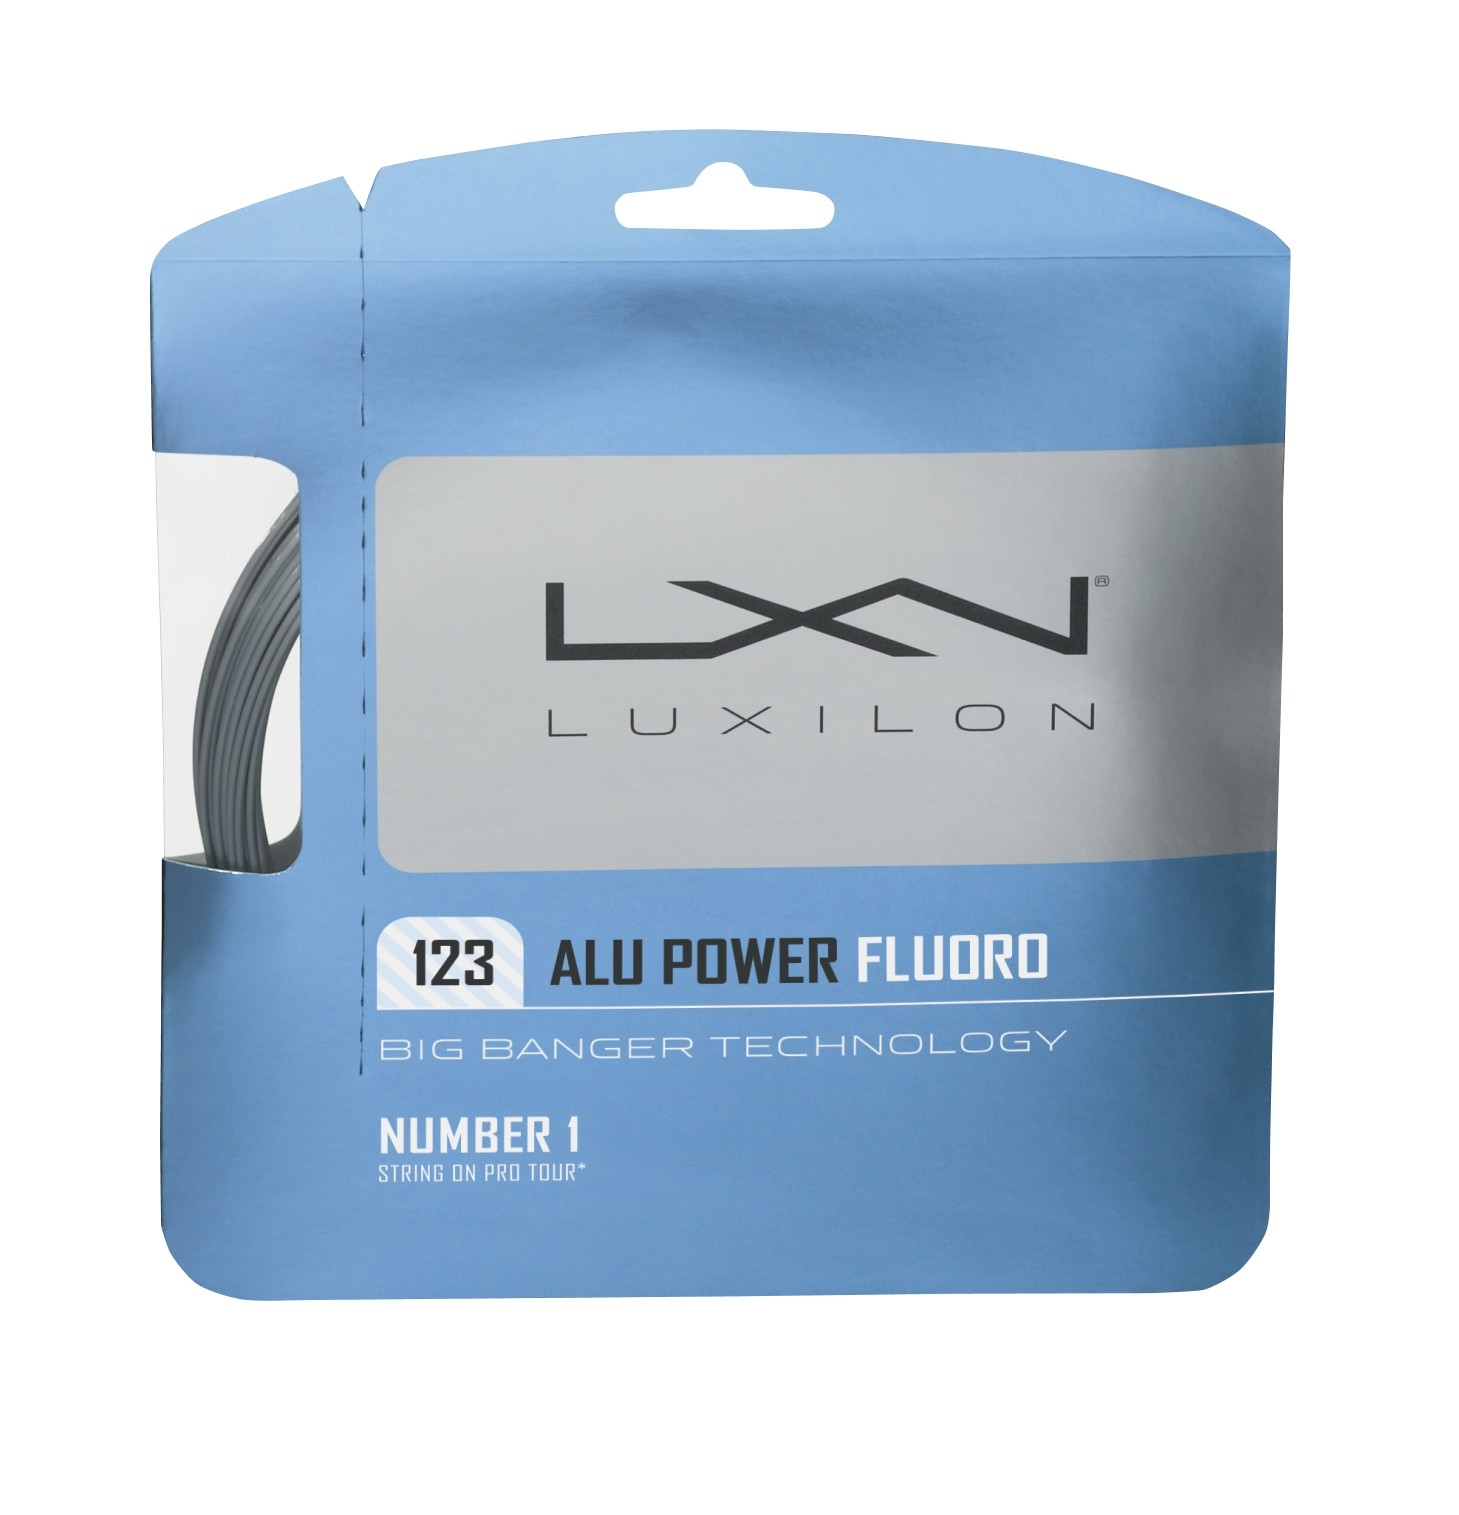 LUXILON ALU POWER FLUORO 12M